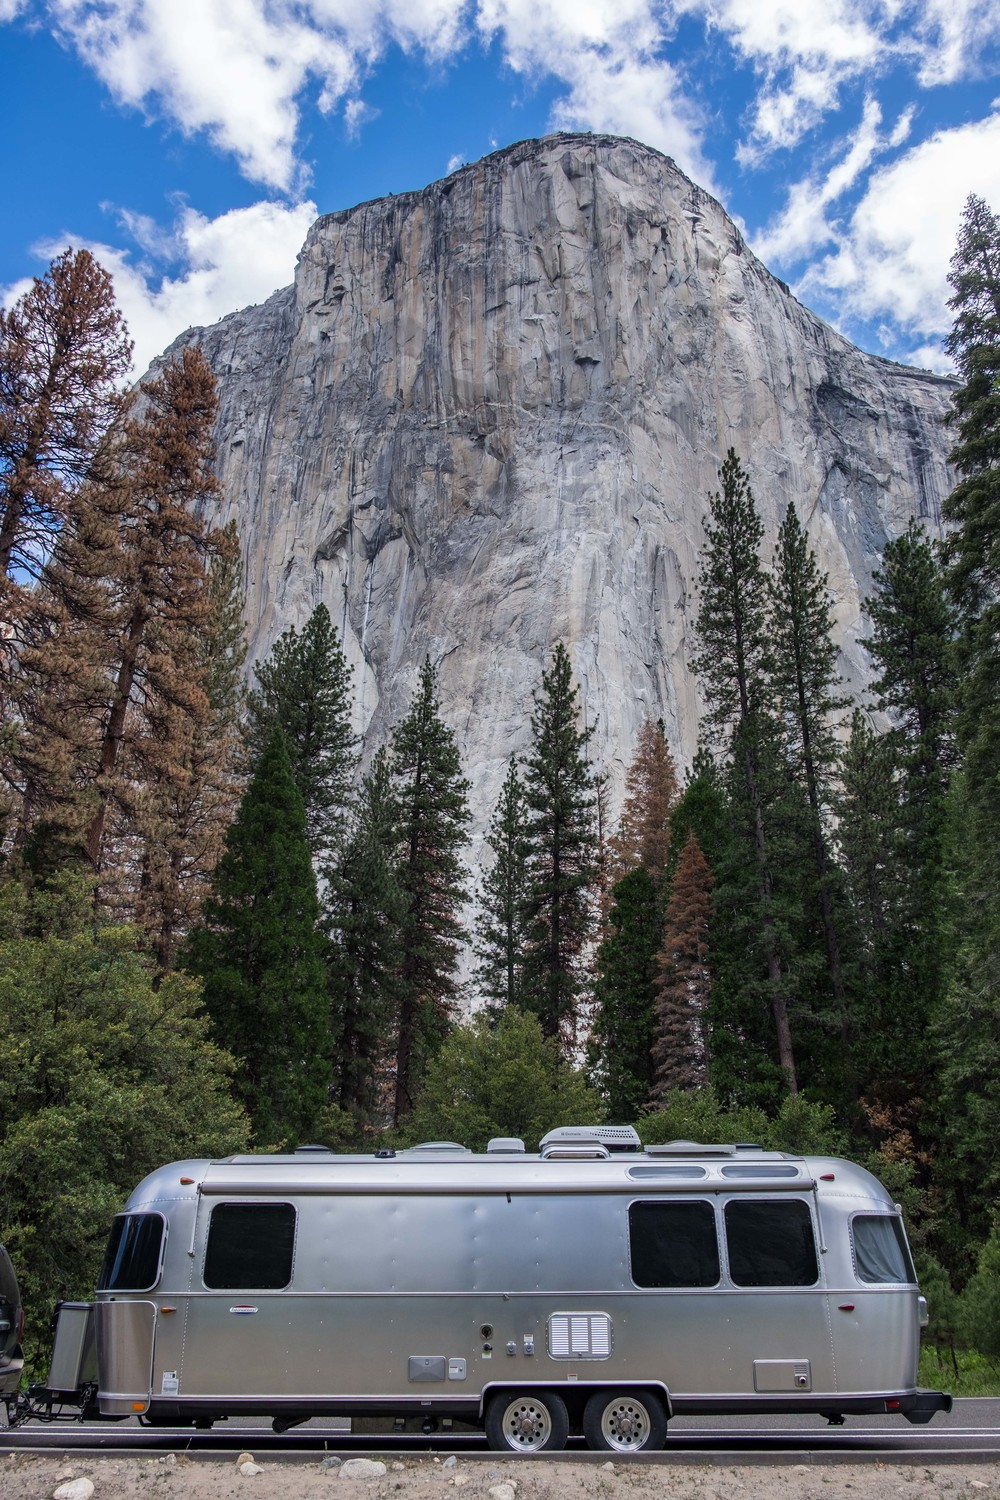 Wally dwarfed beneath El Cap in Yosemite.